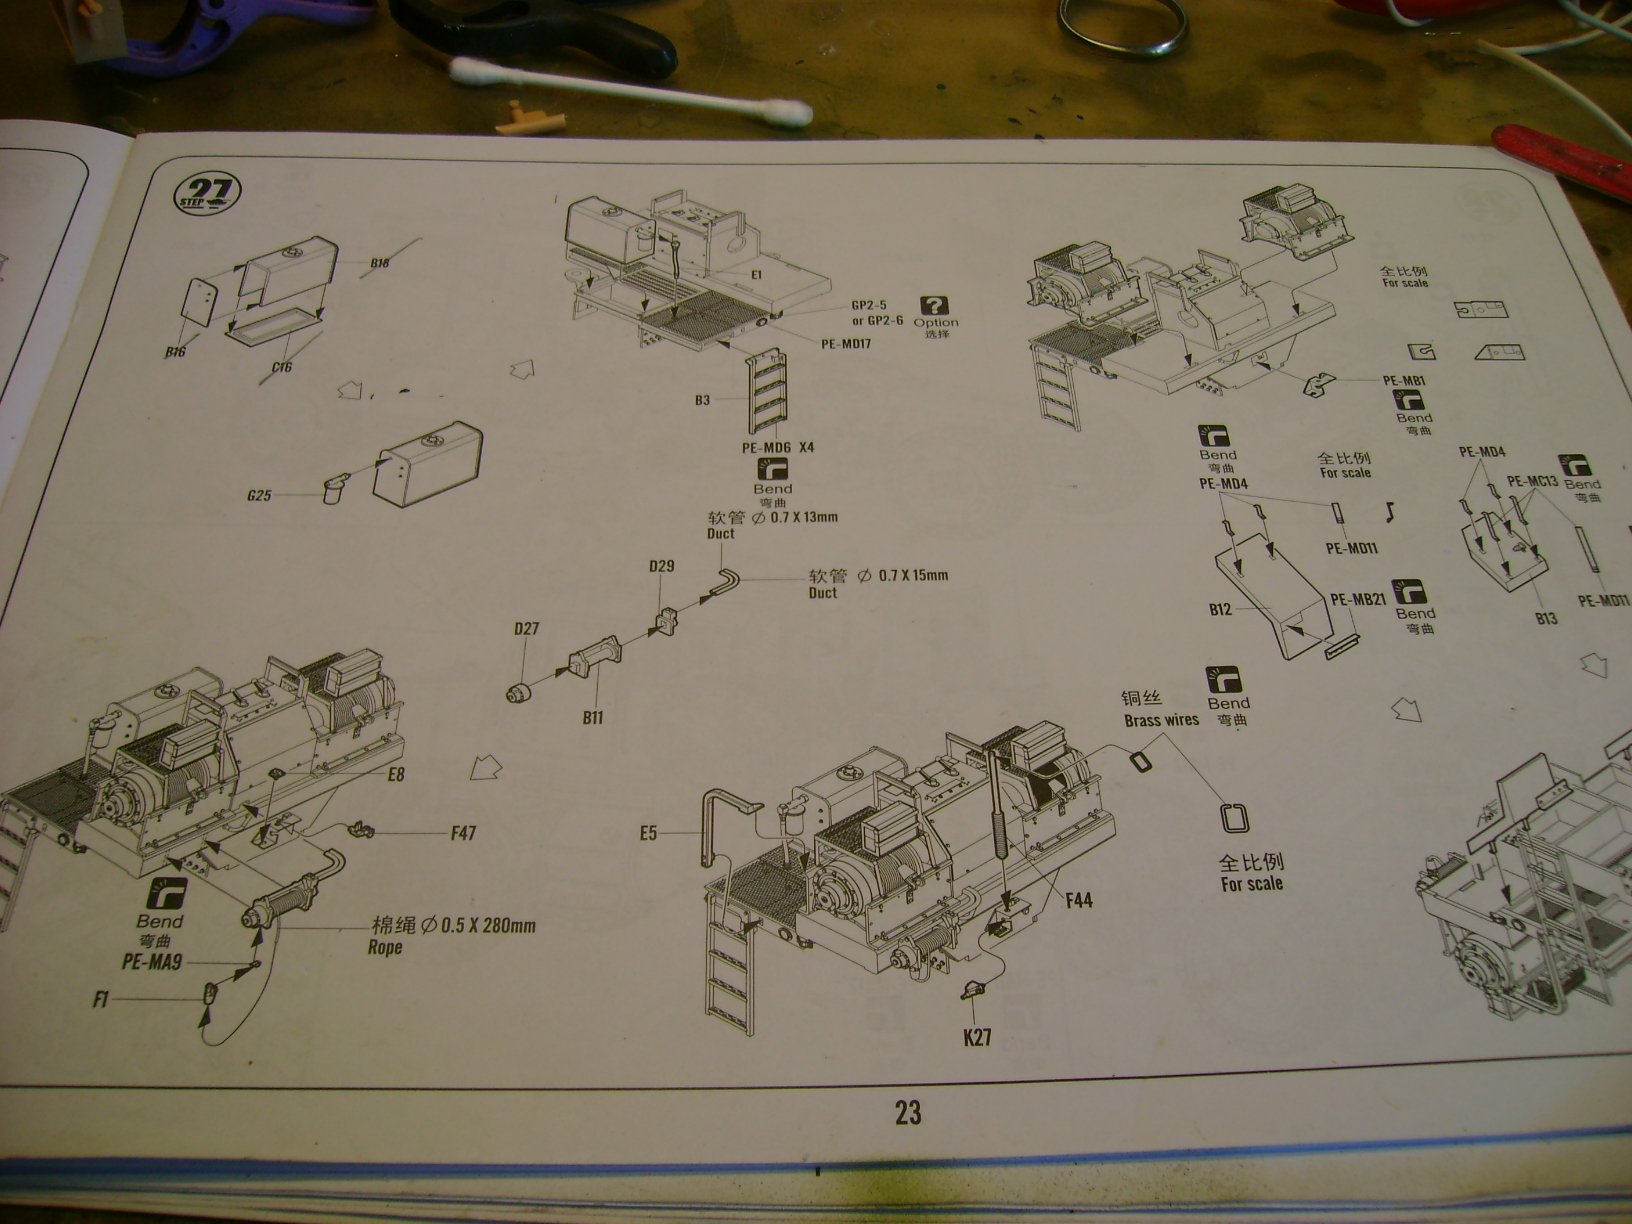 M1070 Truck Tractor & M1000 Semi-Trailer By T-bird!!!!! 1/35 Hobby Boss.Up du01/02.... - Page 3 755f